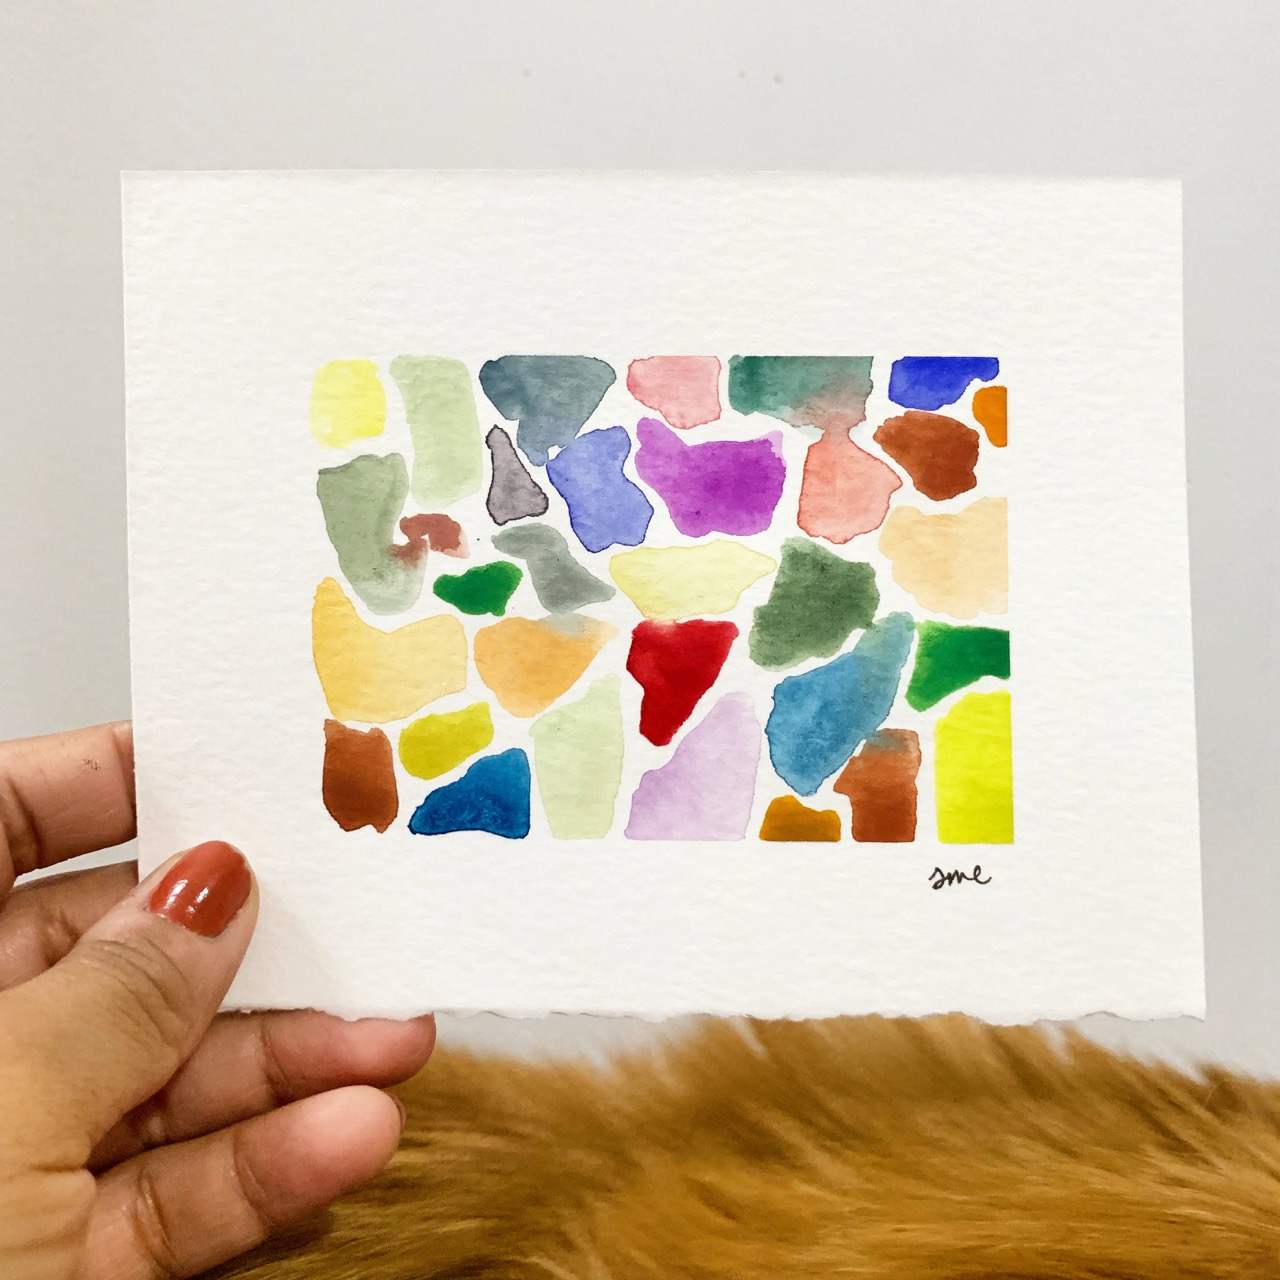 100 days abstract watercolor - 1 (1).jpg